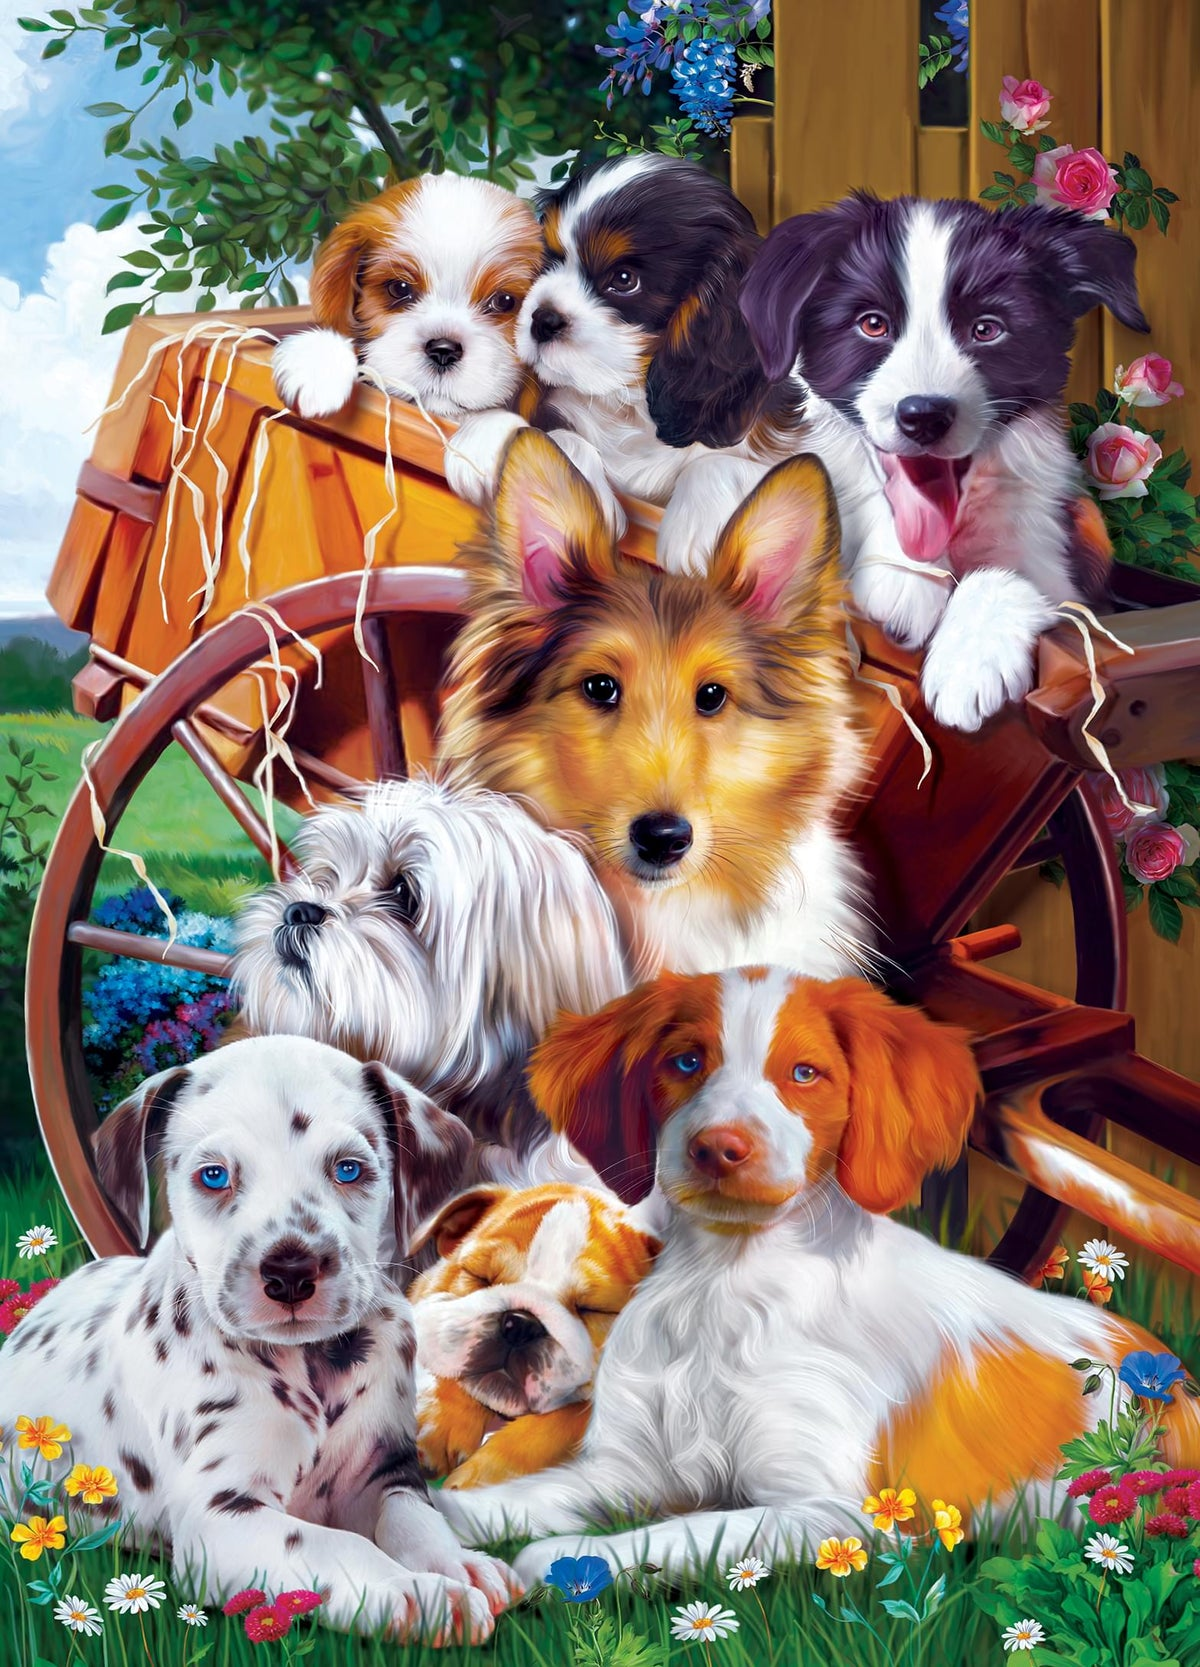 Furry Friends Ready for Work 1000 Piece Jigsaw Puzzle